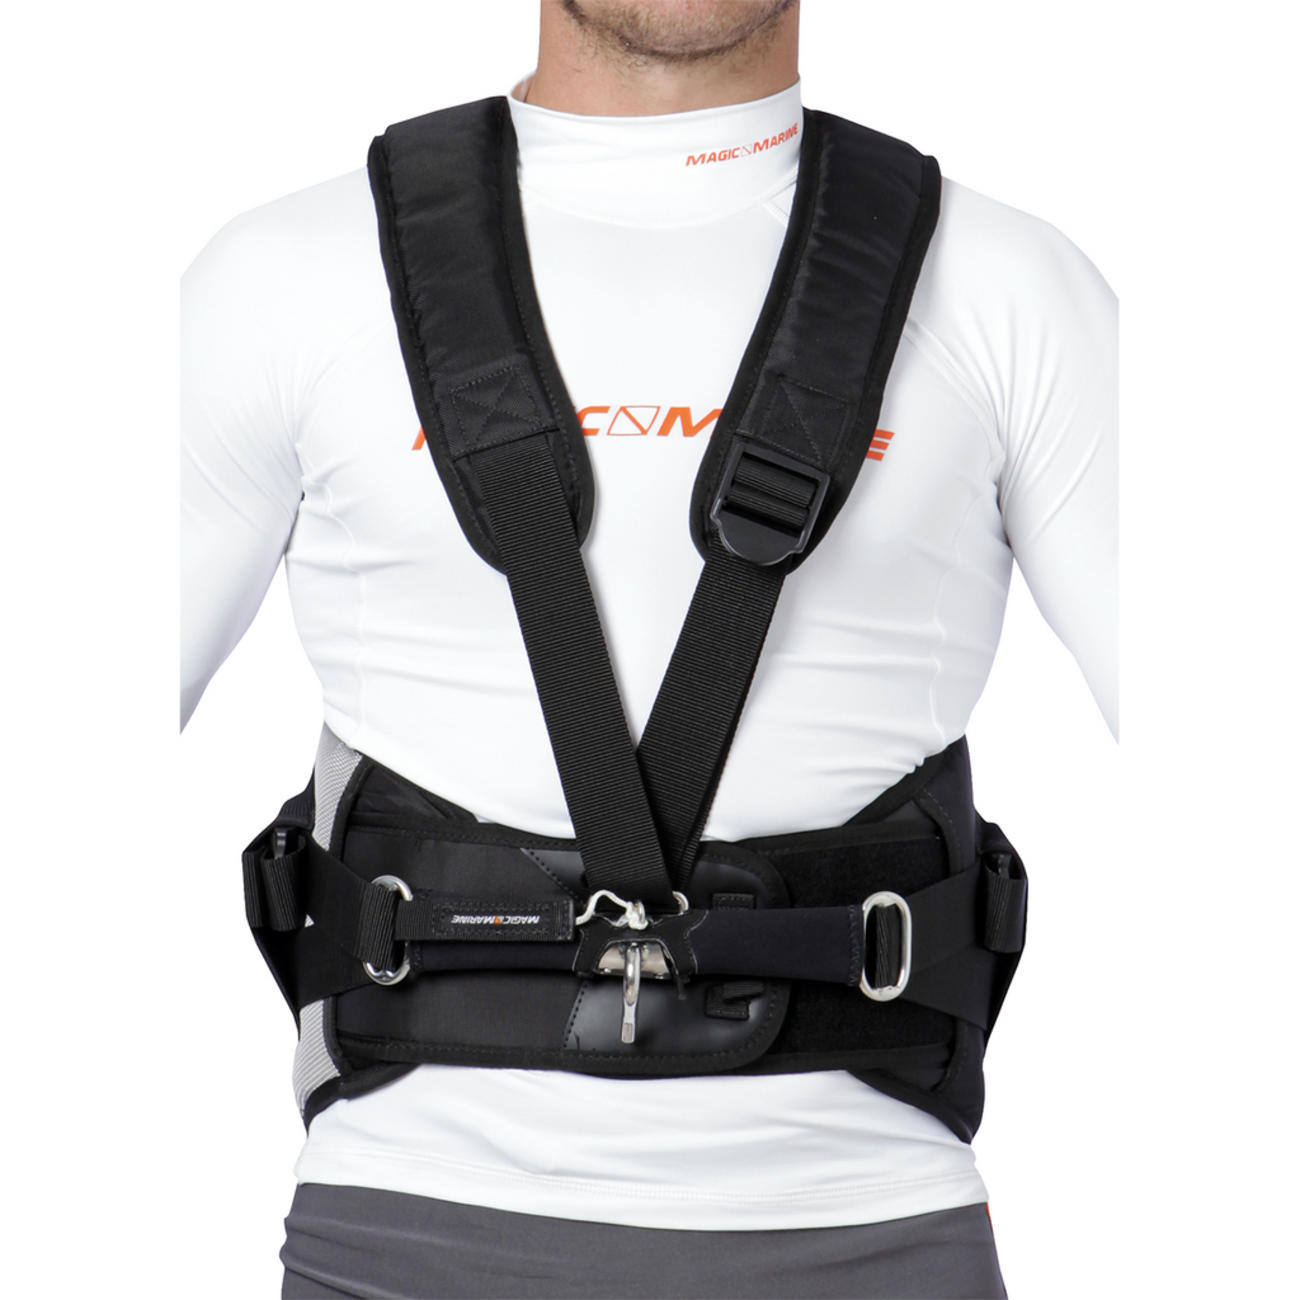 HIKING HARNESS